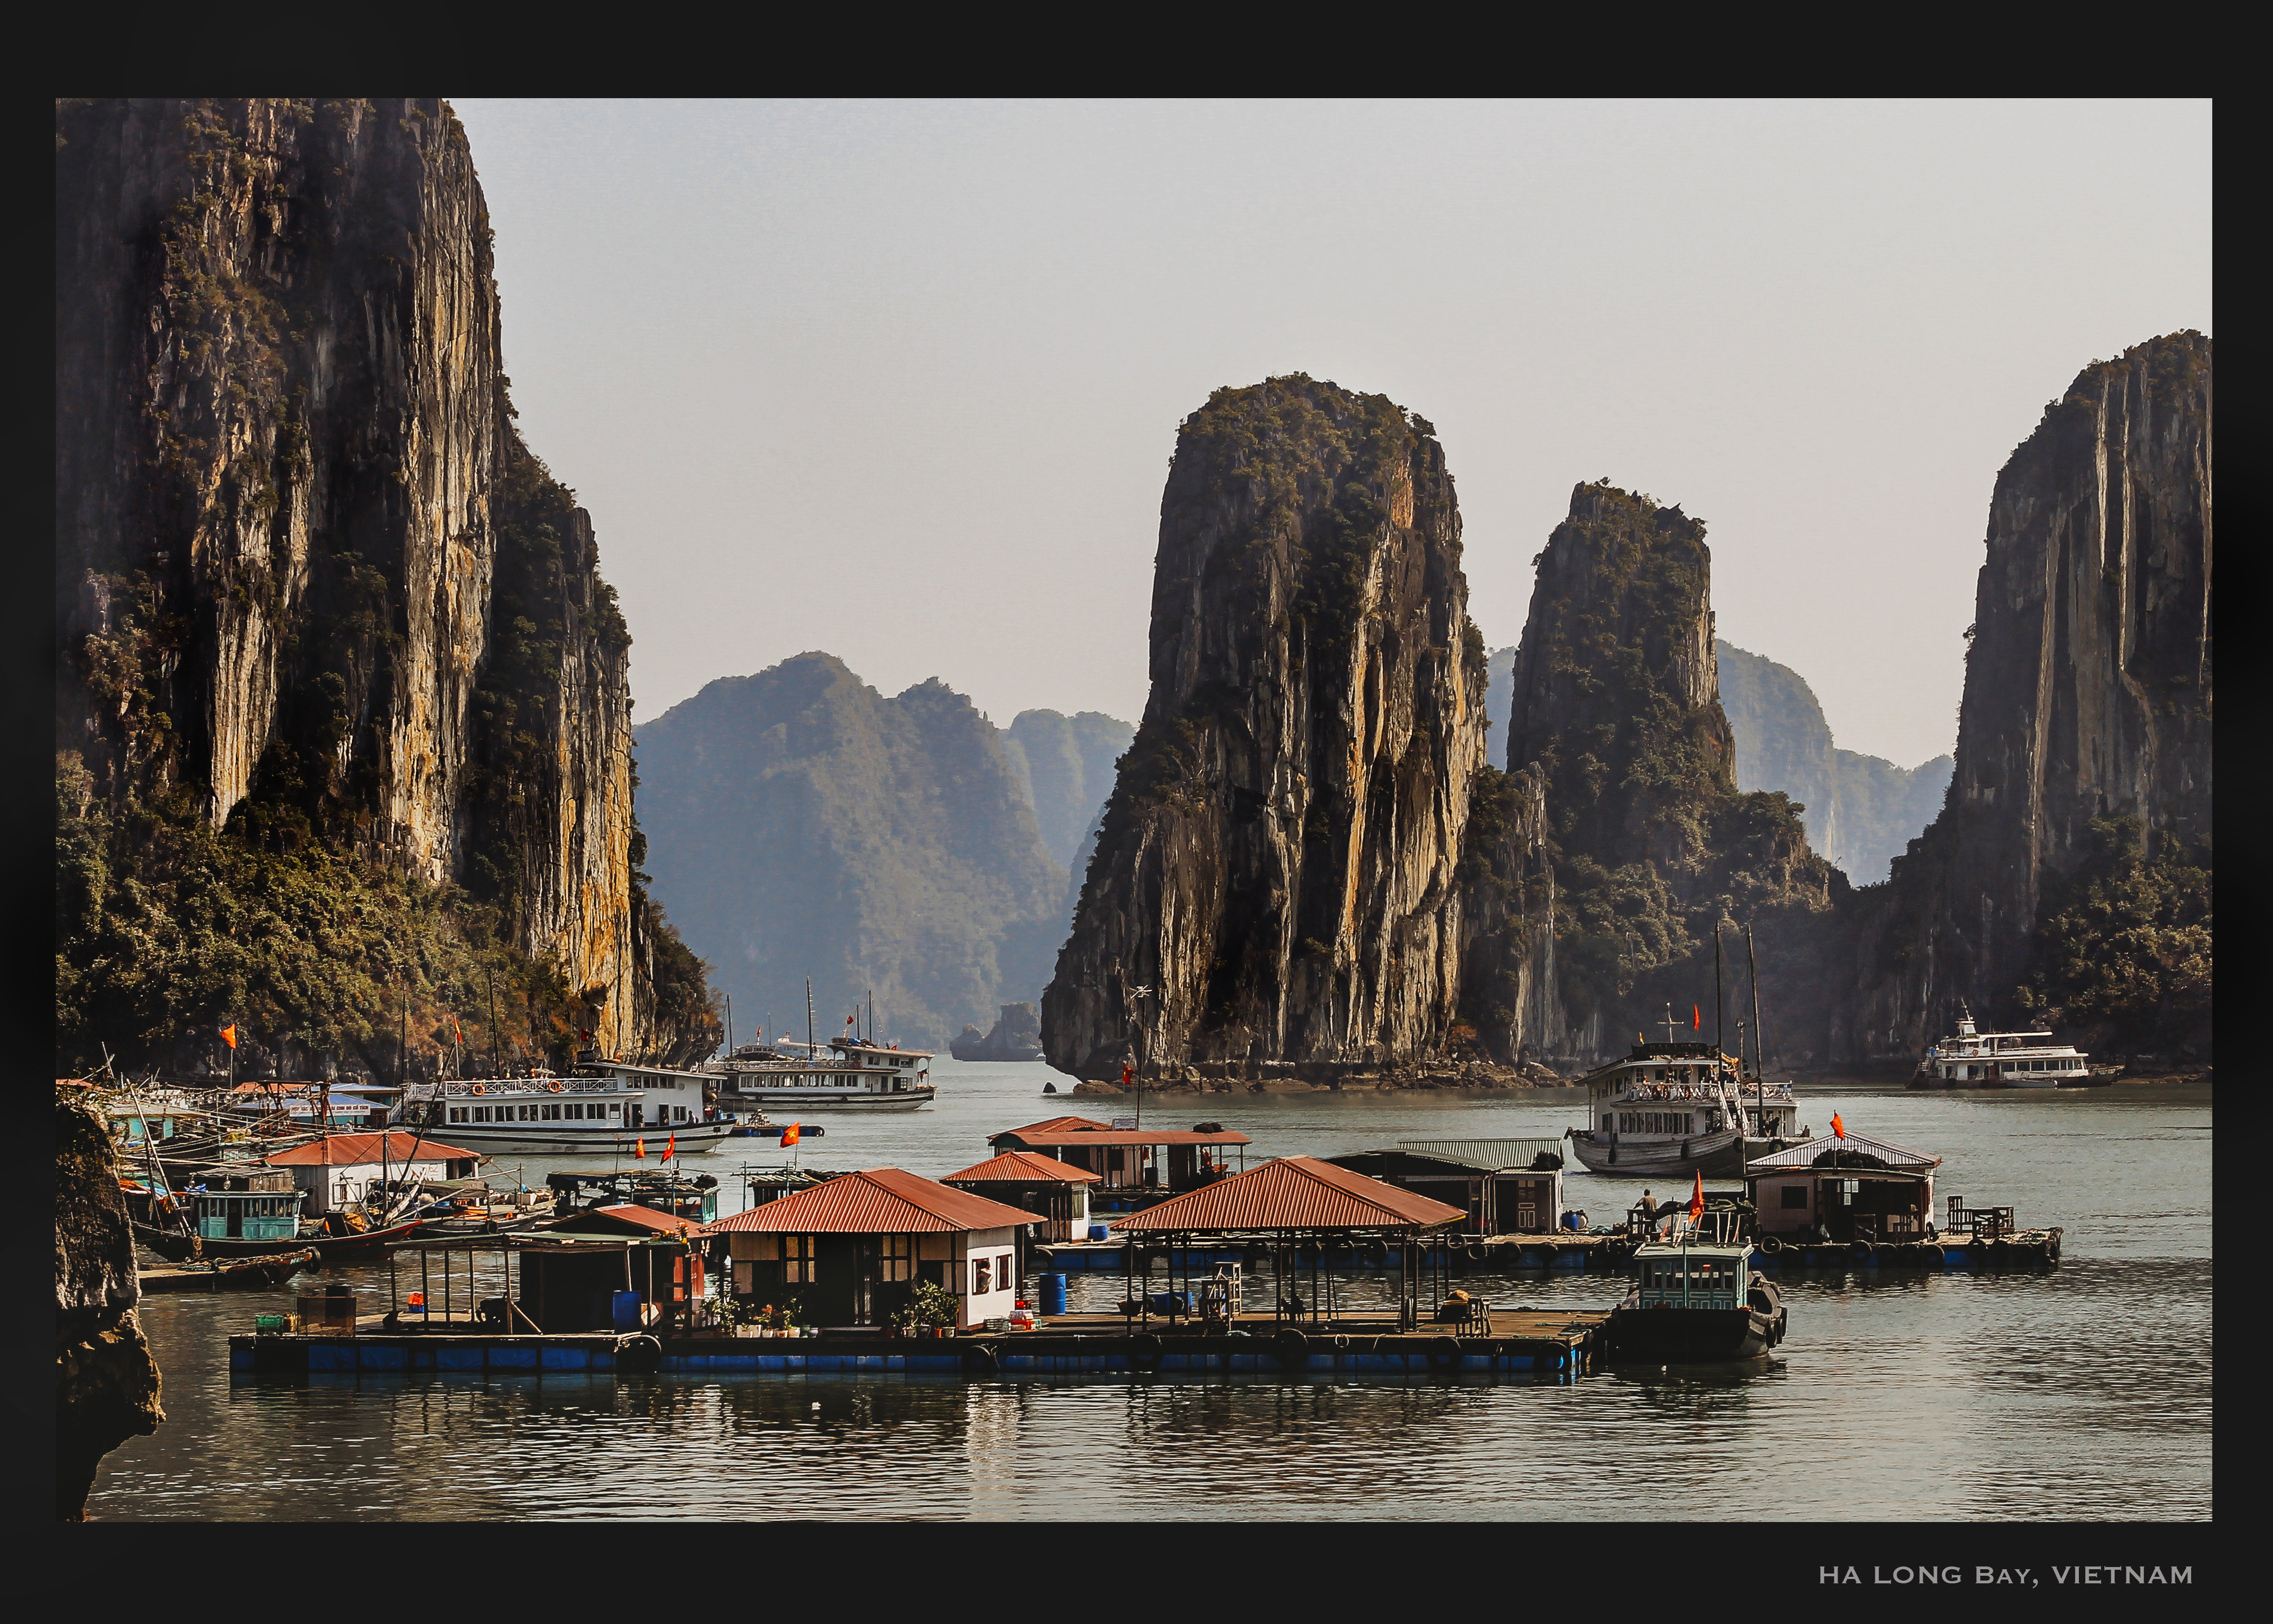 Ha Long Bay copy